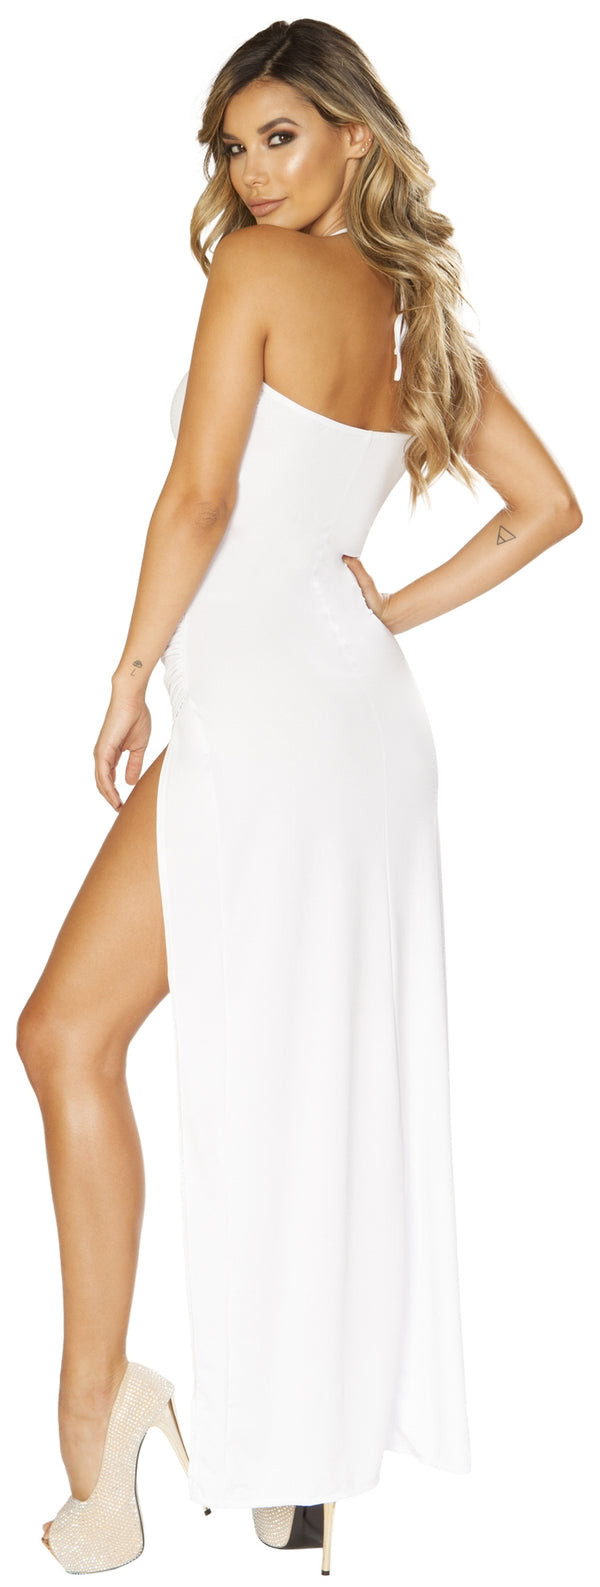 RM-3654 Ruched Maxi White Dress back